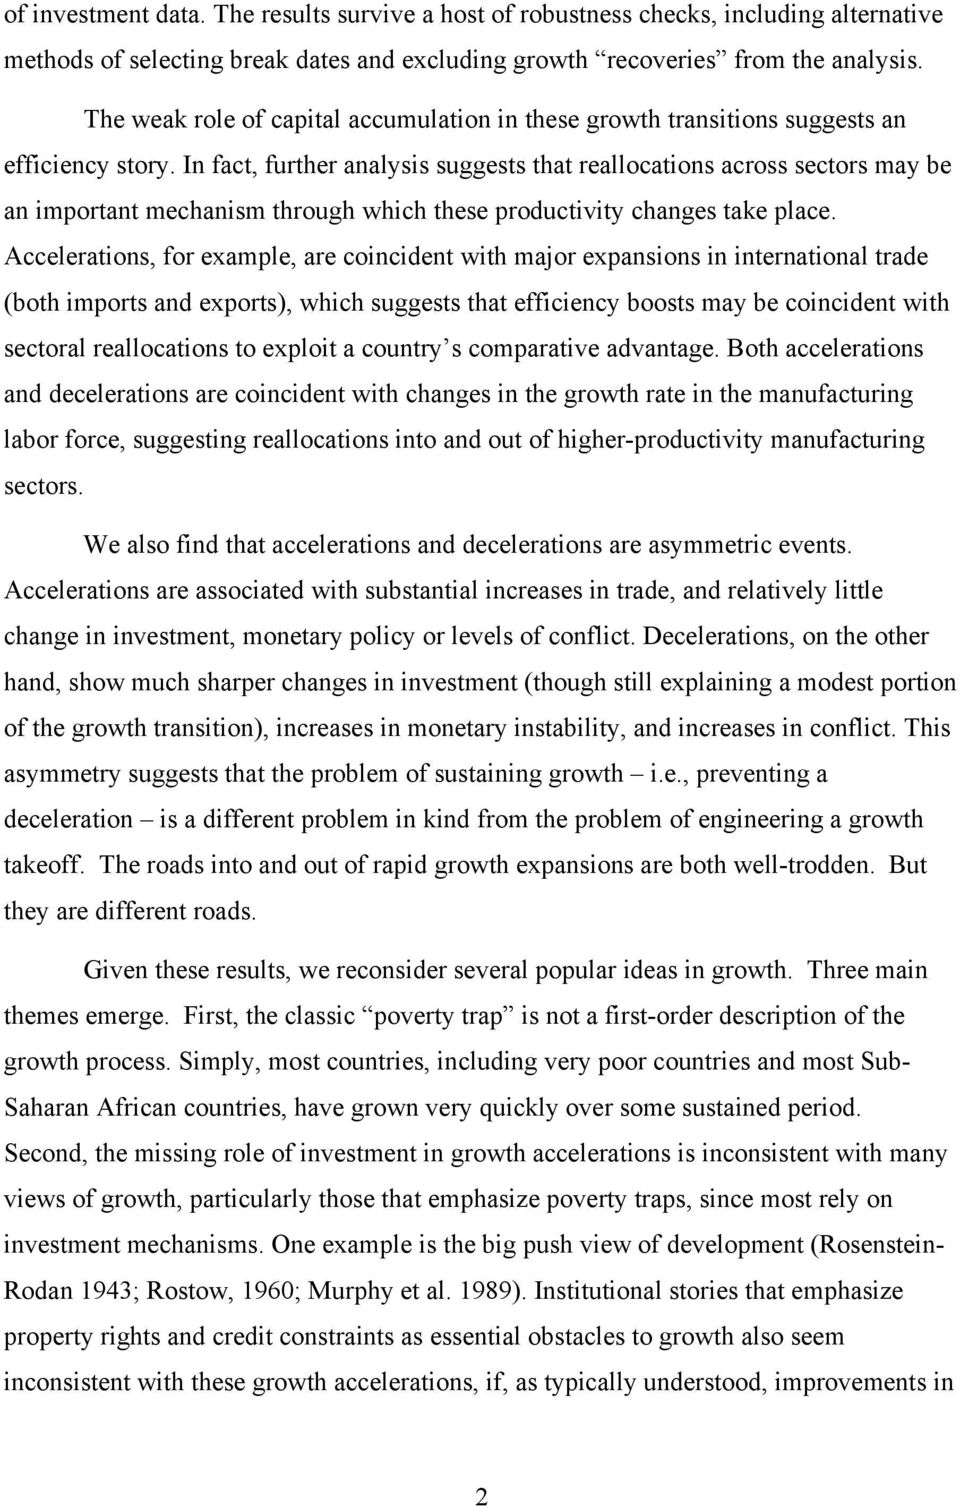 In fact, further analysis suggests that reallocations across sectors may be an important mechanism through which these productivity changes take place.